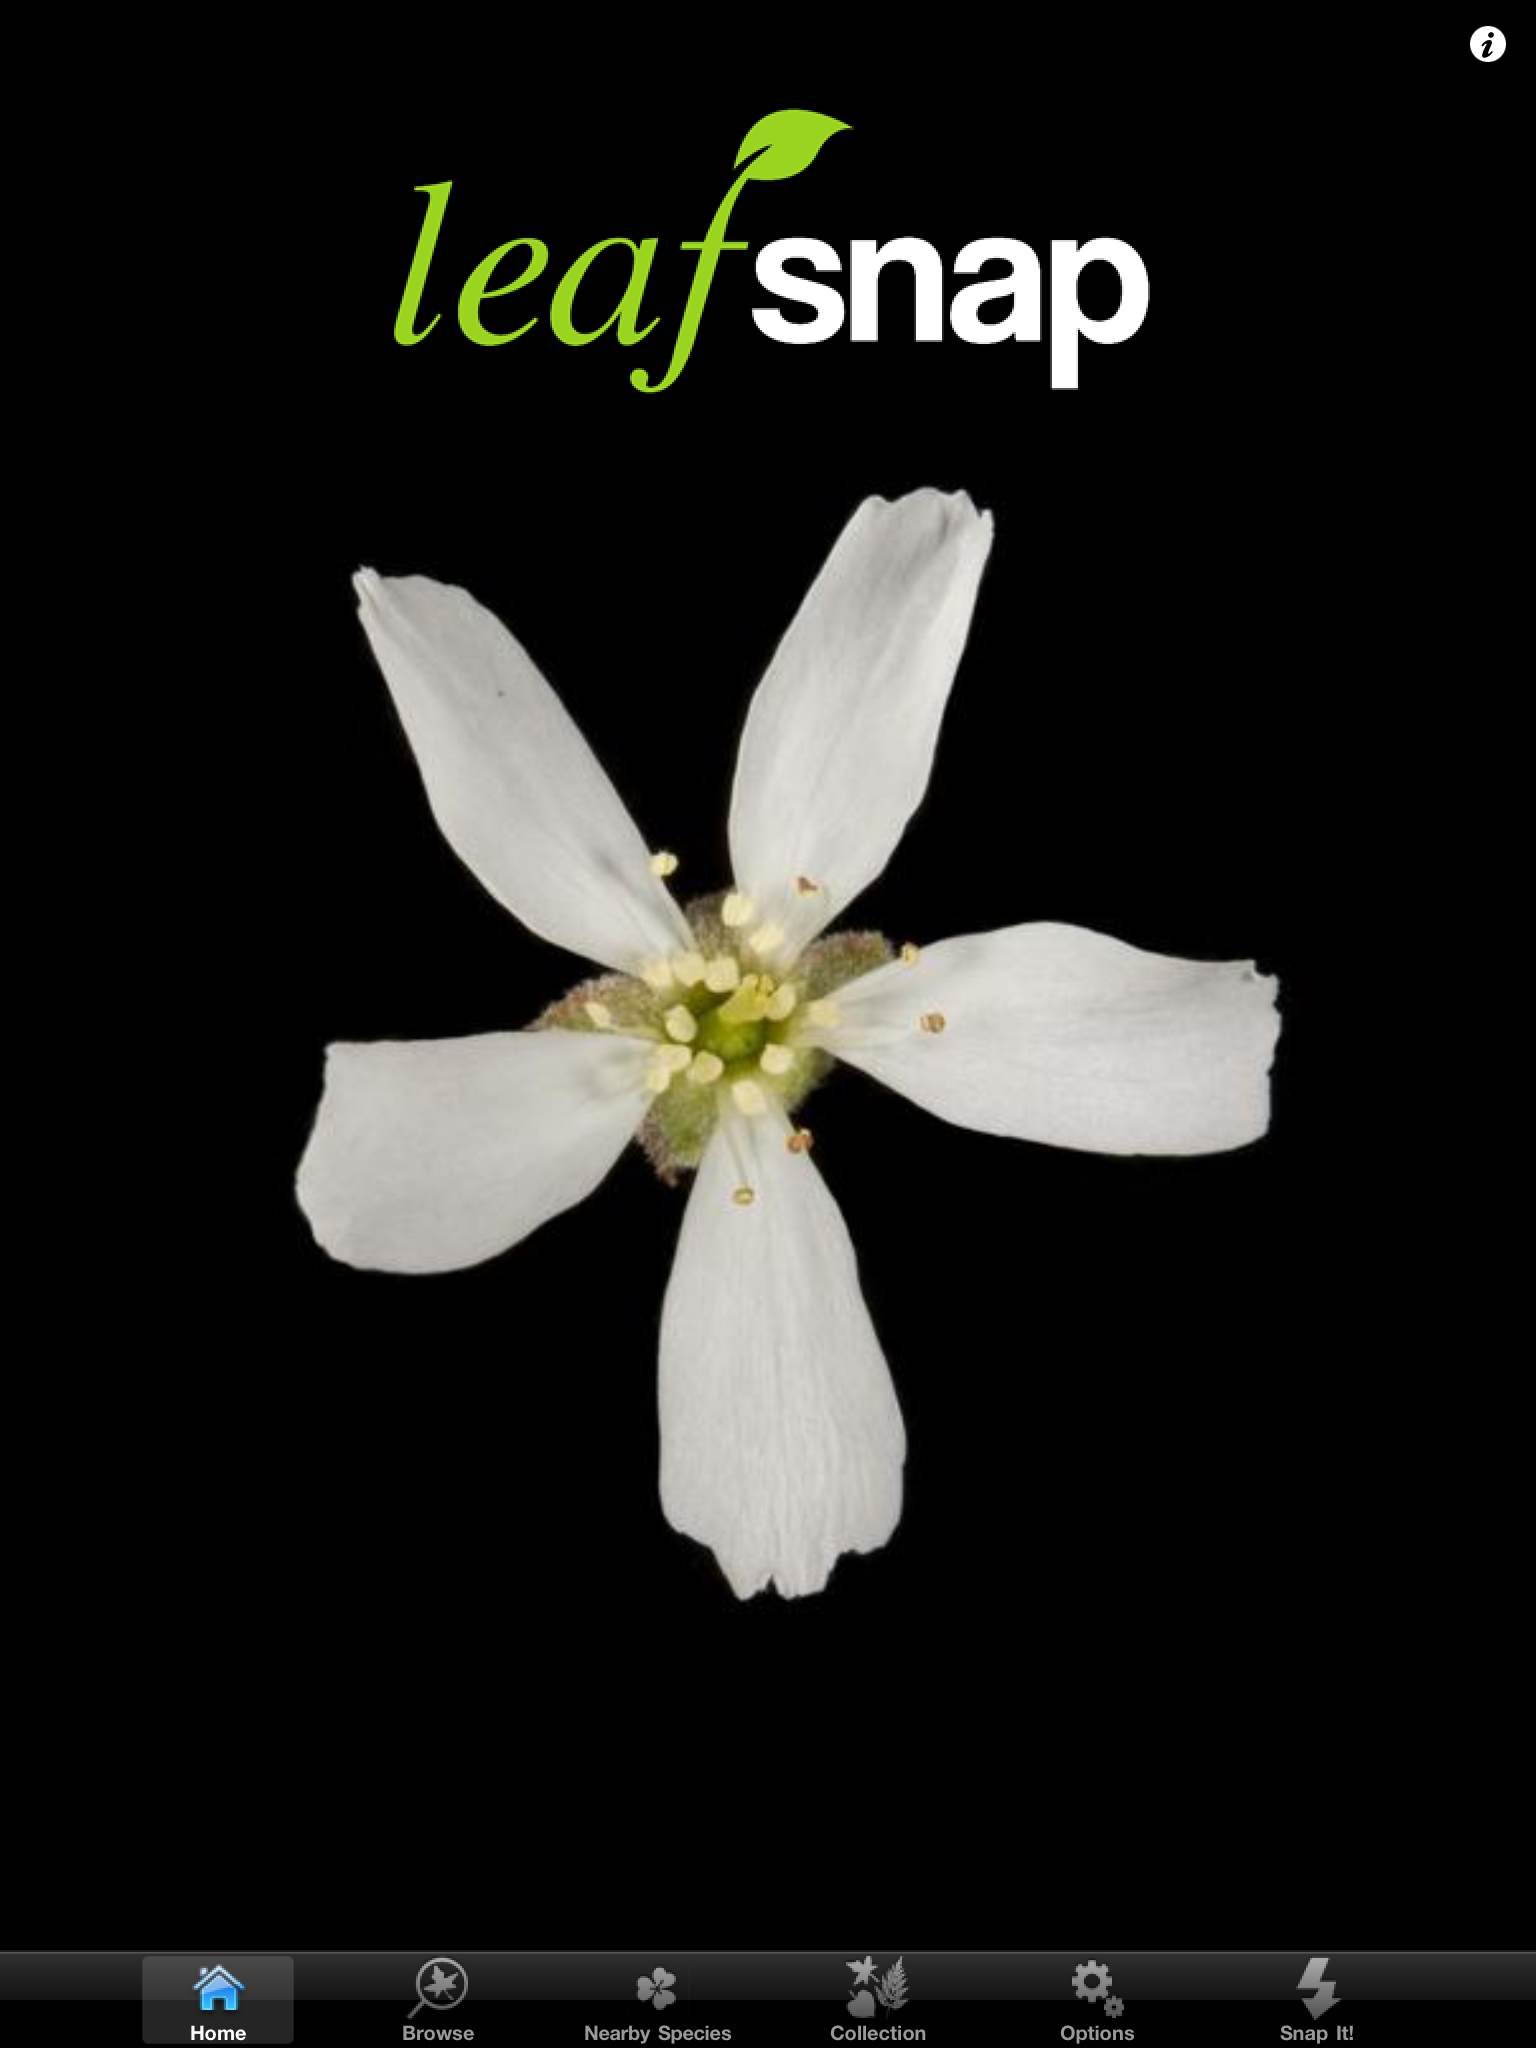 Leafsnap application tablette Enfant iPhone iPad La Souris Grise 1